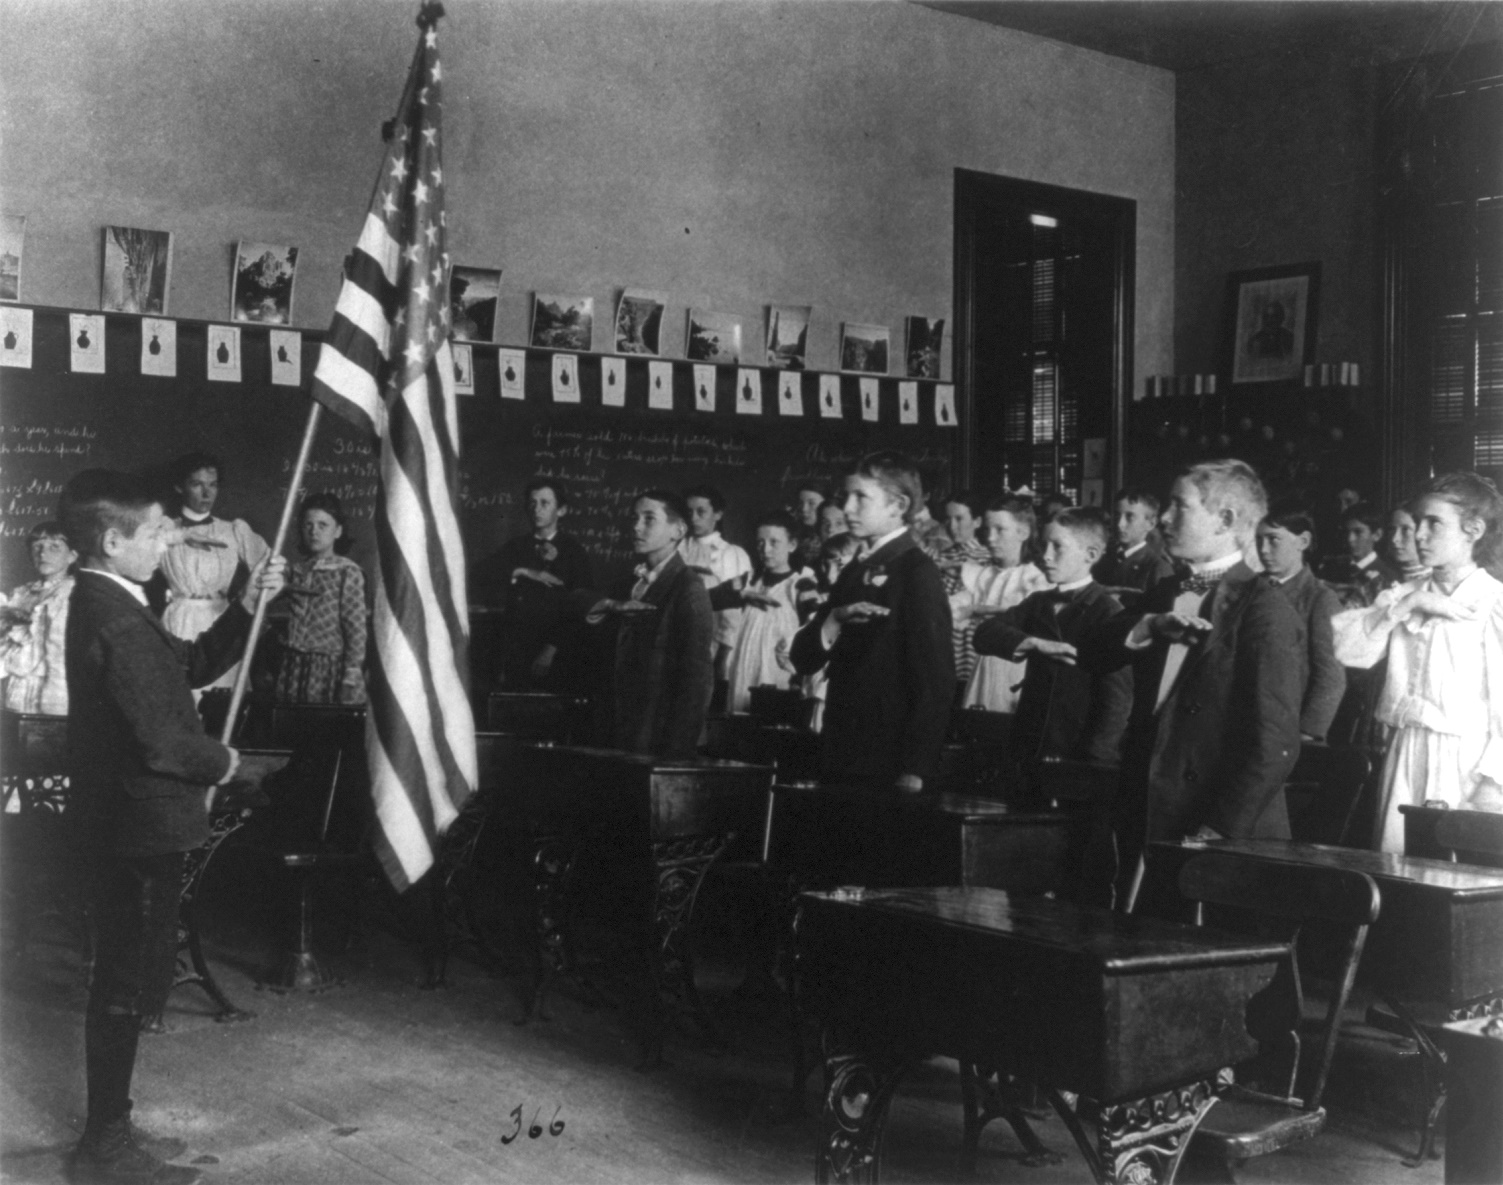 Students pledging to the flag, 1899, 8th Division, Washington, D.C. Part of the Frances Benjamin Johnston 1890 - 1900 Washington, D.C., school survey.